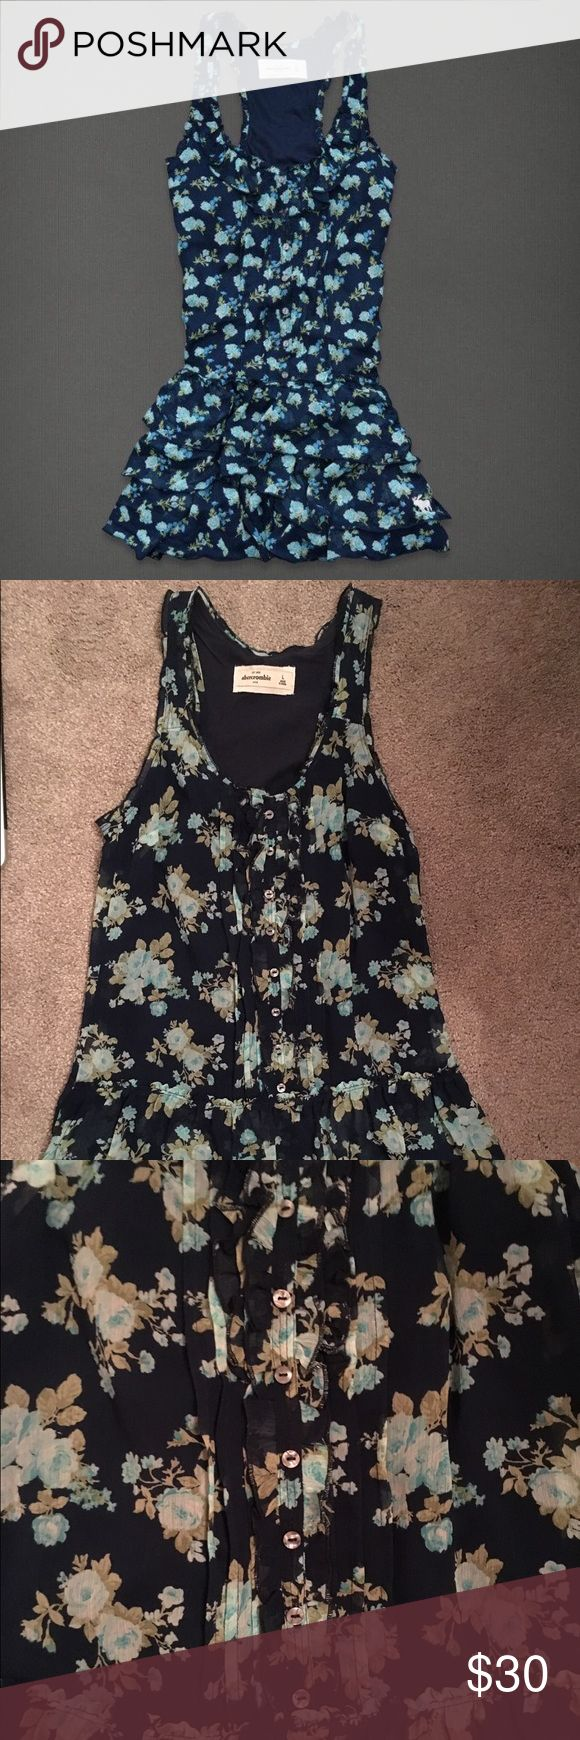 Abercrombie and Fitch dress Abercrombie and Fitch floral button up dress in great condition! Abercrombie & Fitch Dresses